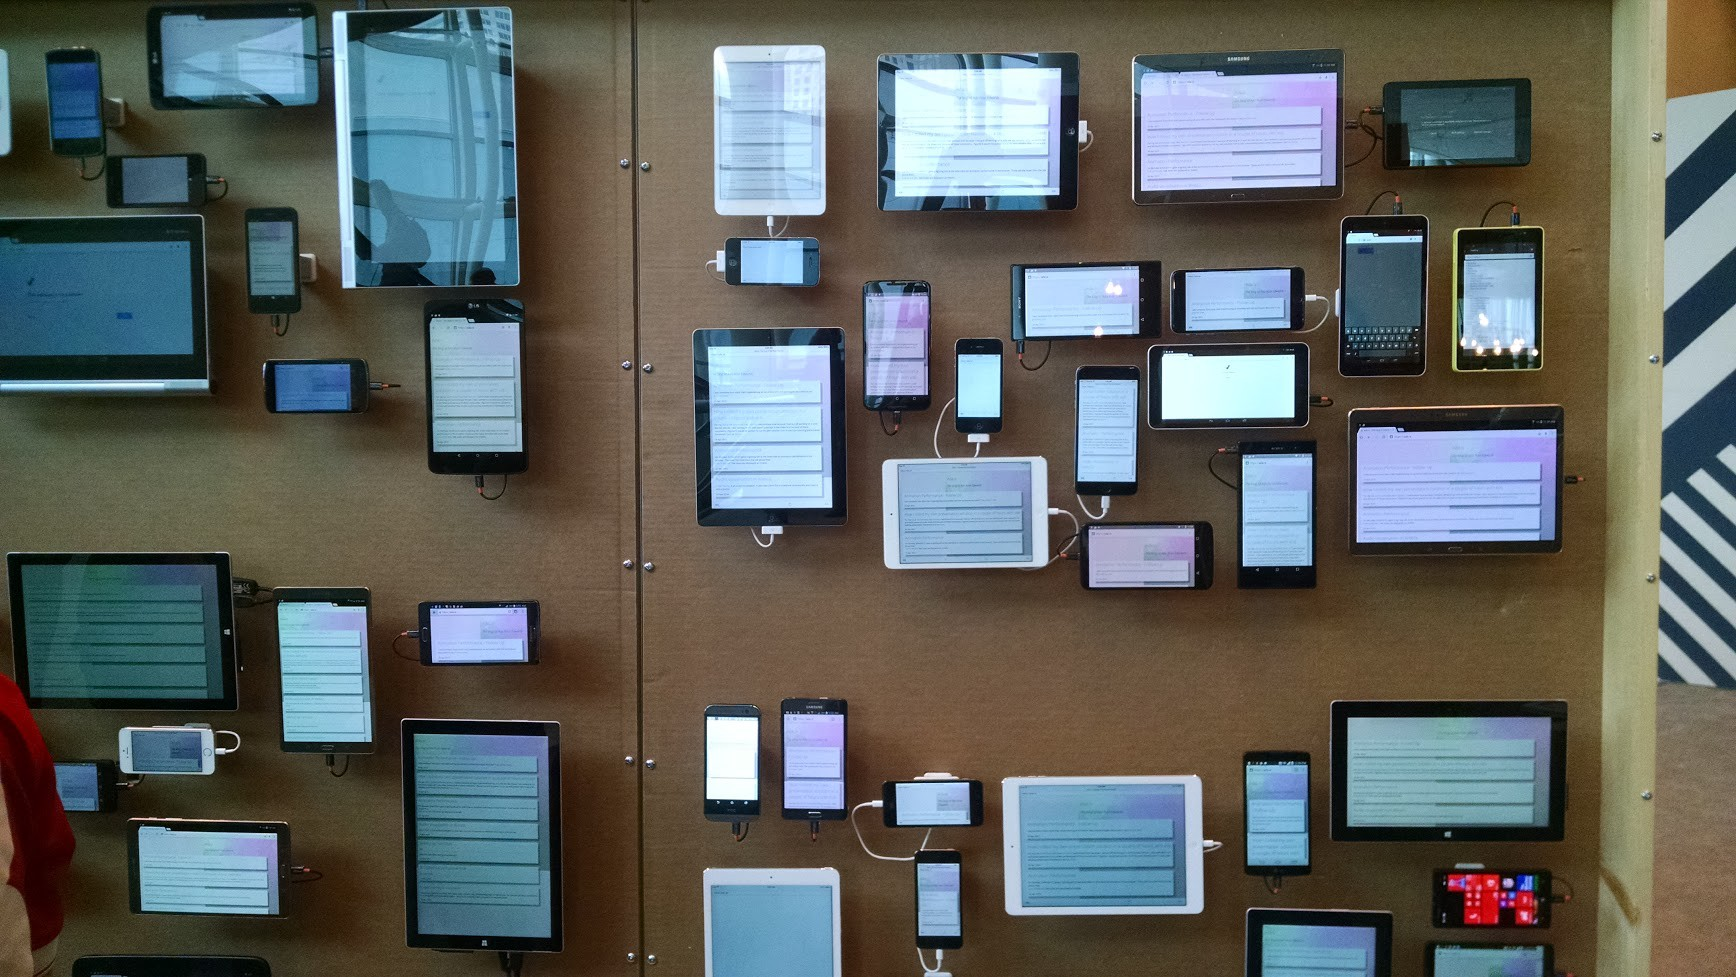 Photo of a device testing wall from Google IO 2015 photo © Ada Rose Cannon